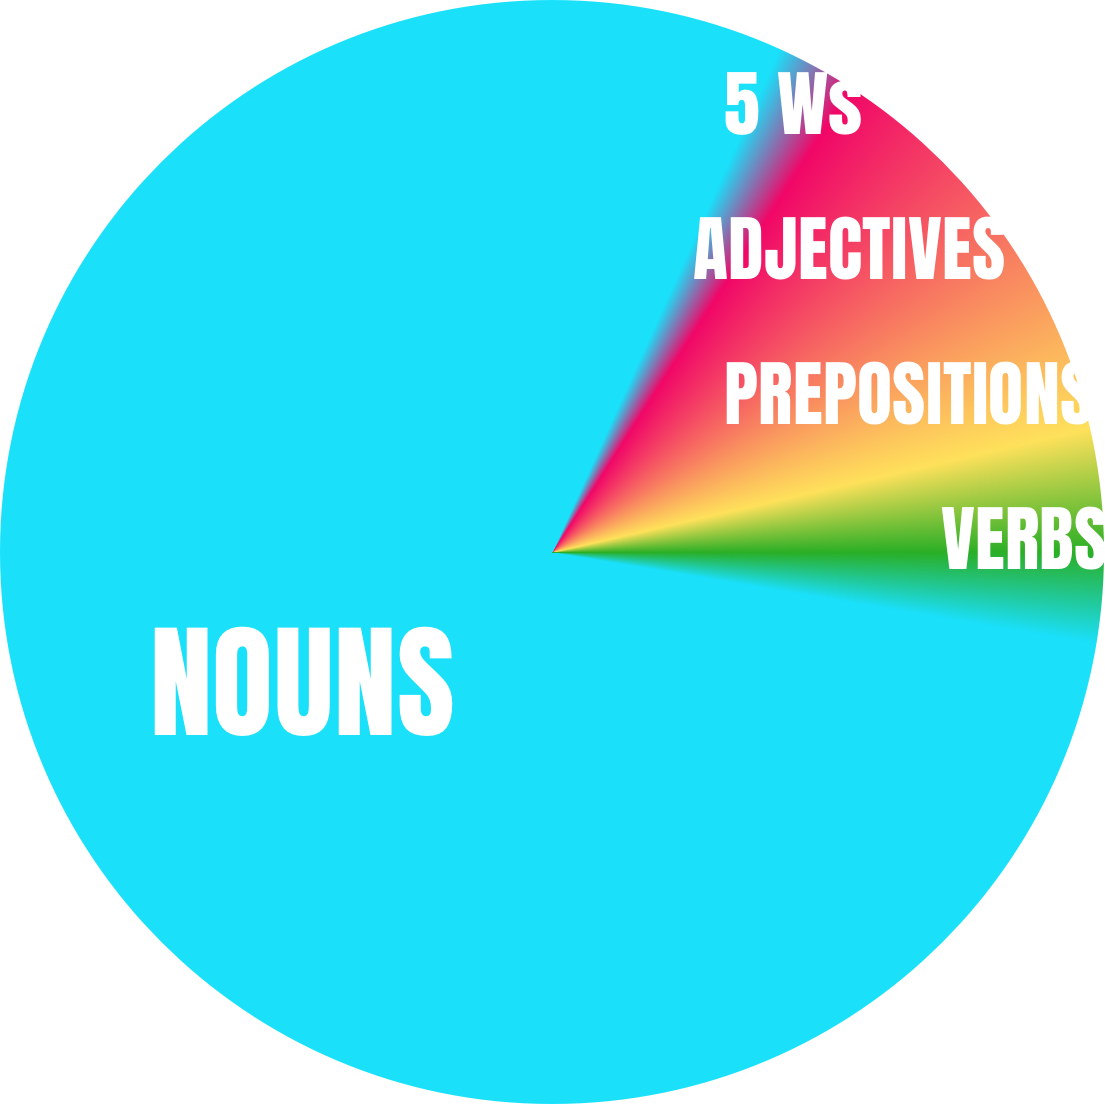 A pie chard shows 80% of the pie taken up with nouns with the remaining slivers taken up with the 5 W's, adjectives, prepositions, and verbs.